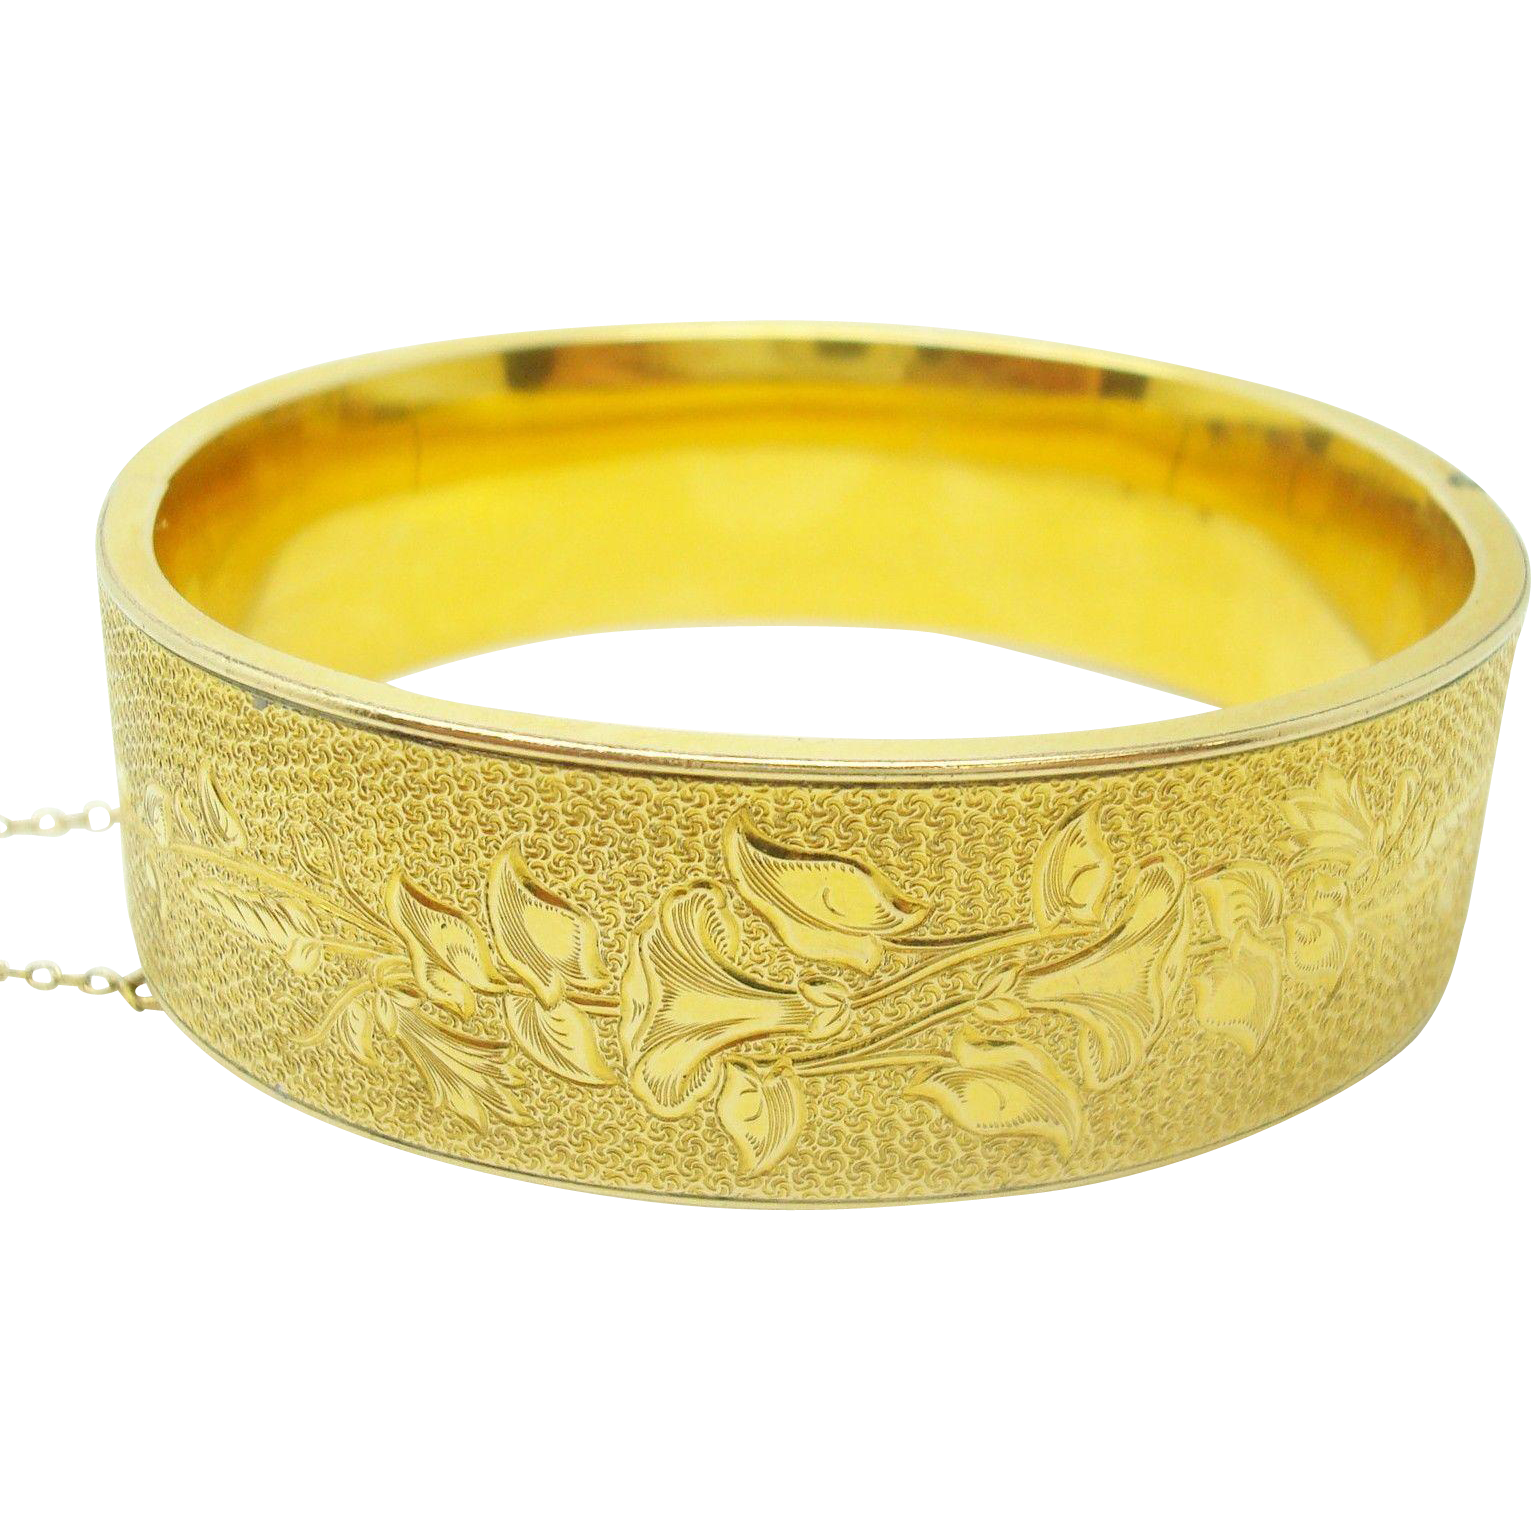 Yellow Gold Bangle Bracelet with Etched Flowers